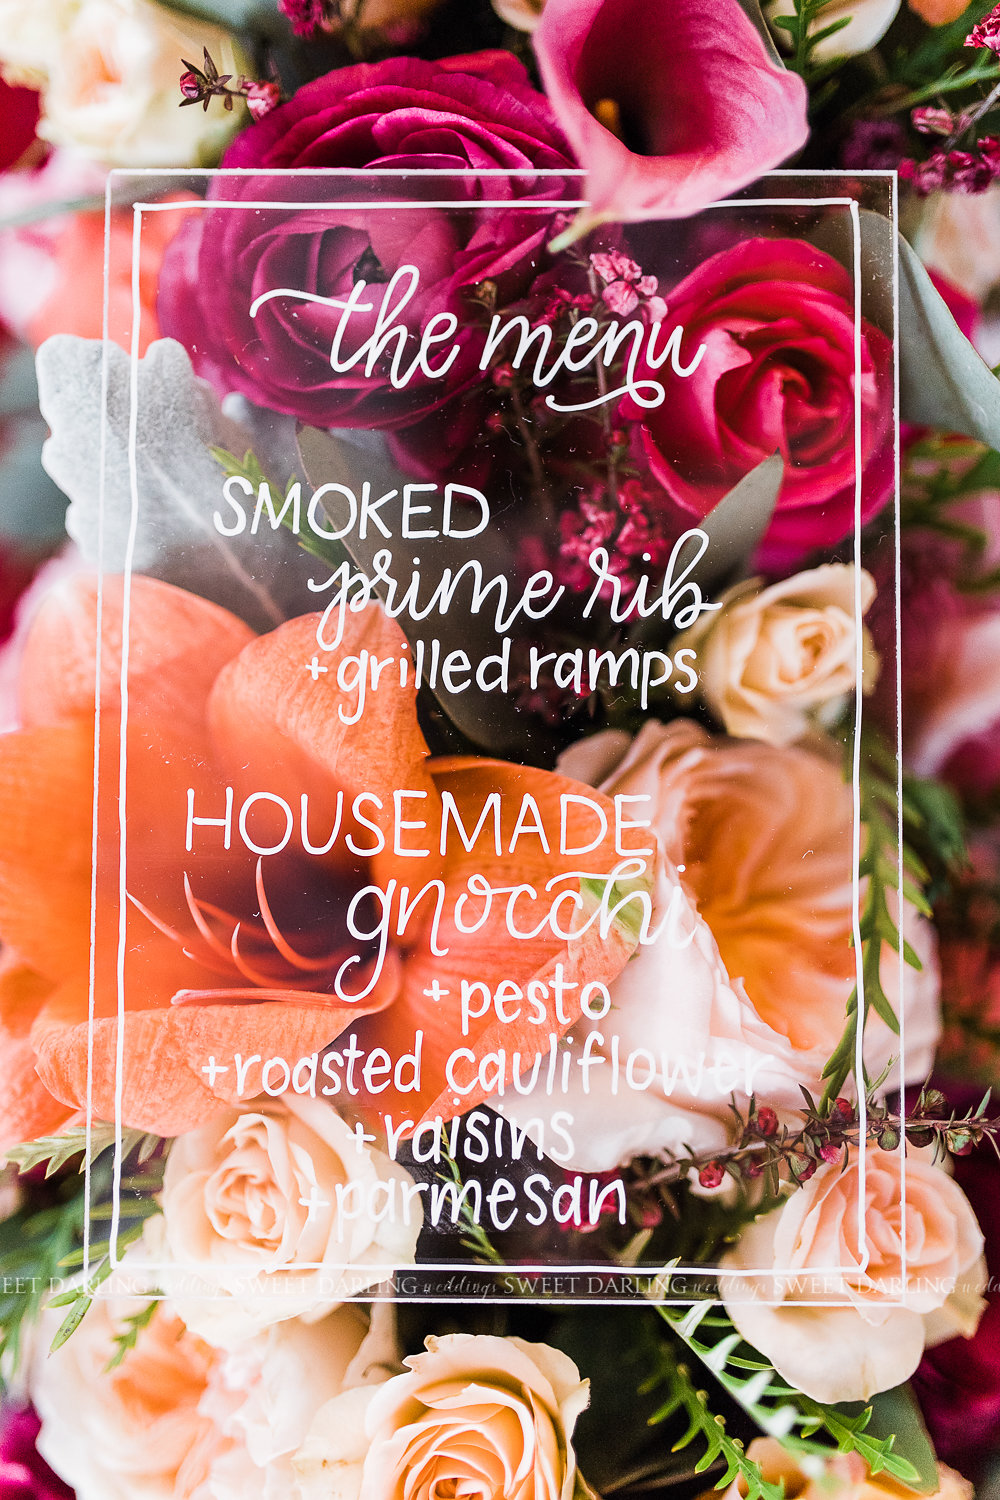 acrylic wedding menu hand lettered white calligraphy florals pink bright.jpg